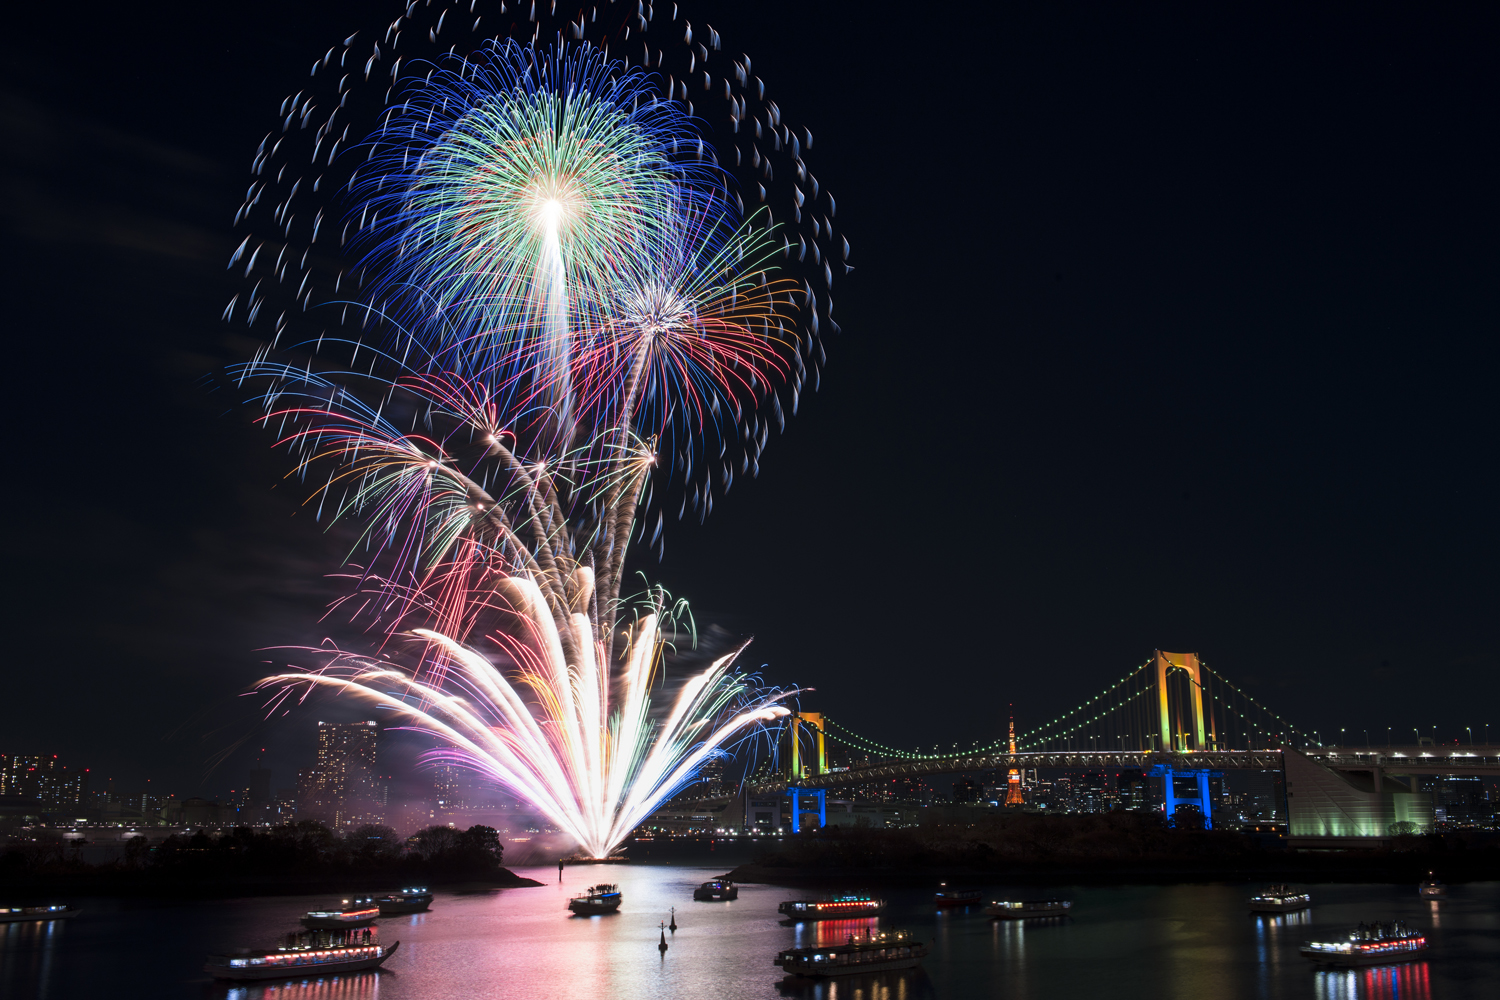 Tokyo Fireworks Festival Private Package Tour